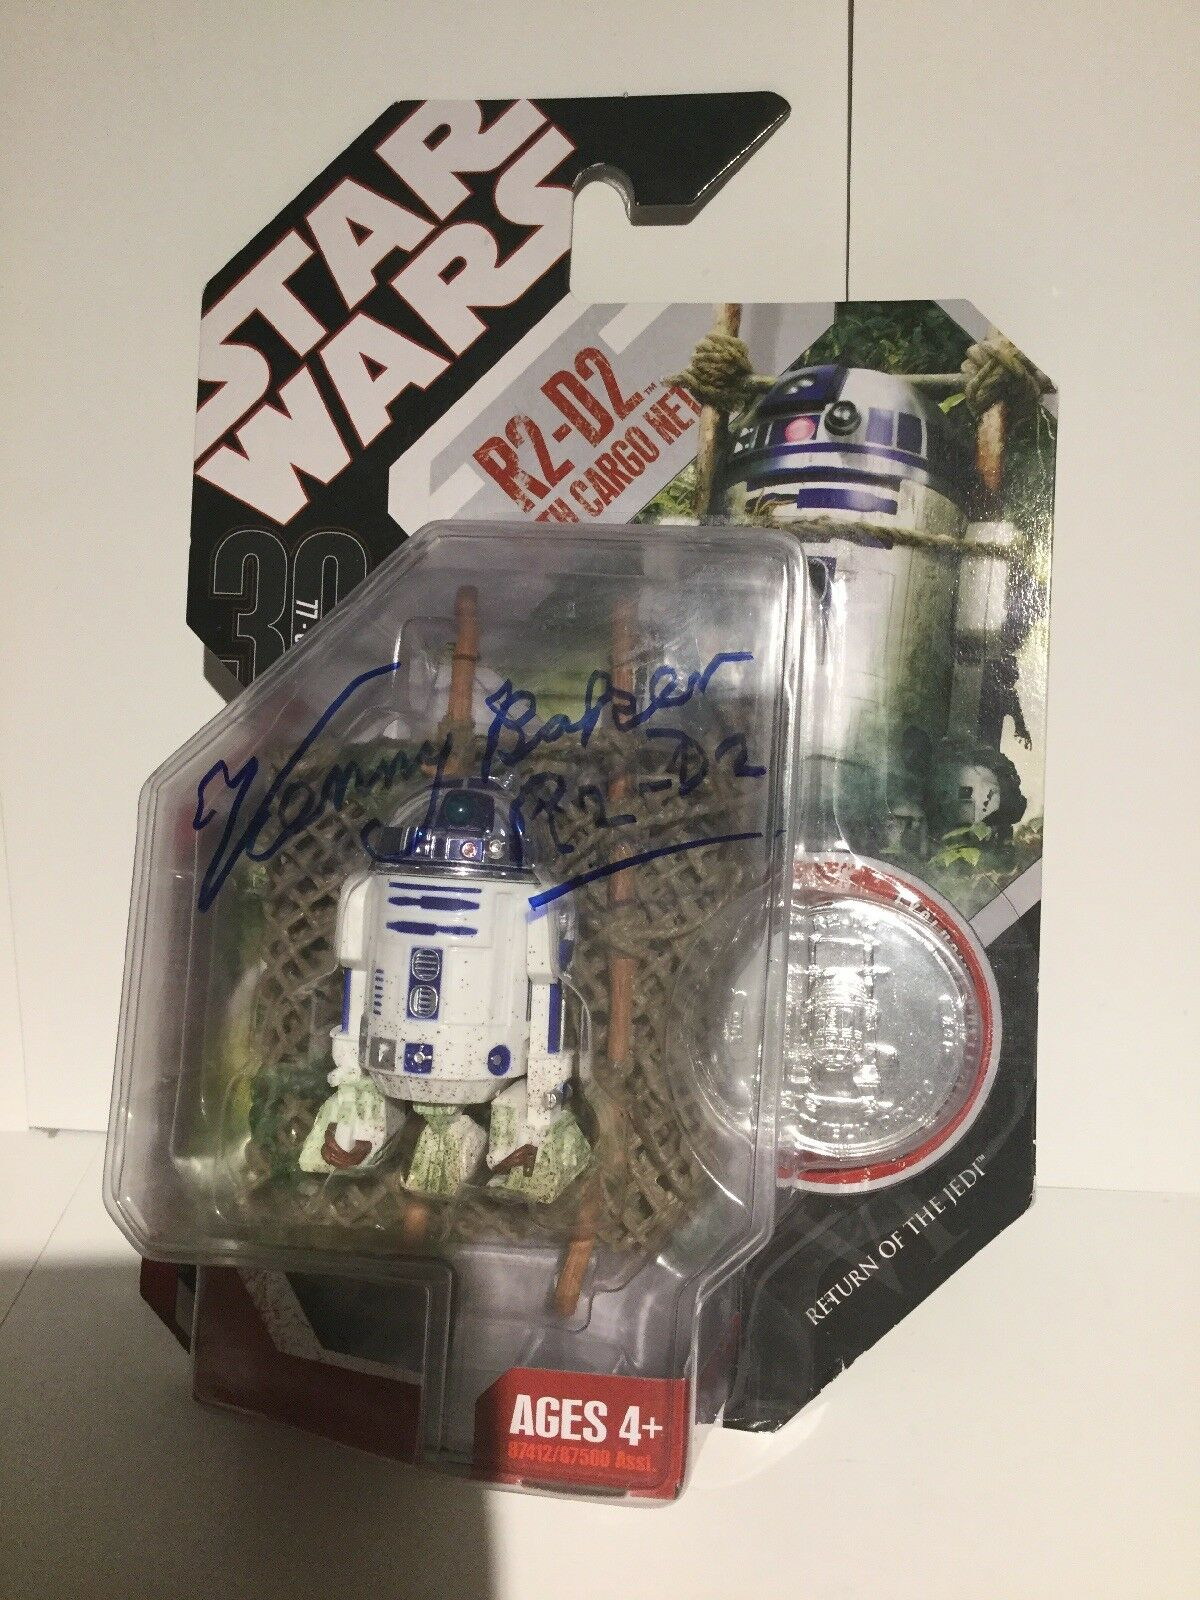 Star Wars Return of the Jedi R2-D2 Figure Signed by Kenny Baker w COA and pic